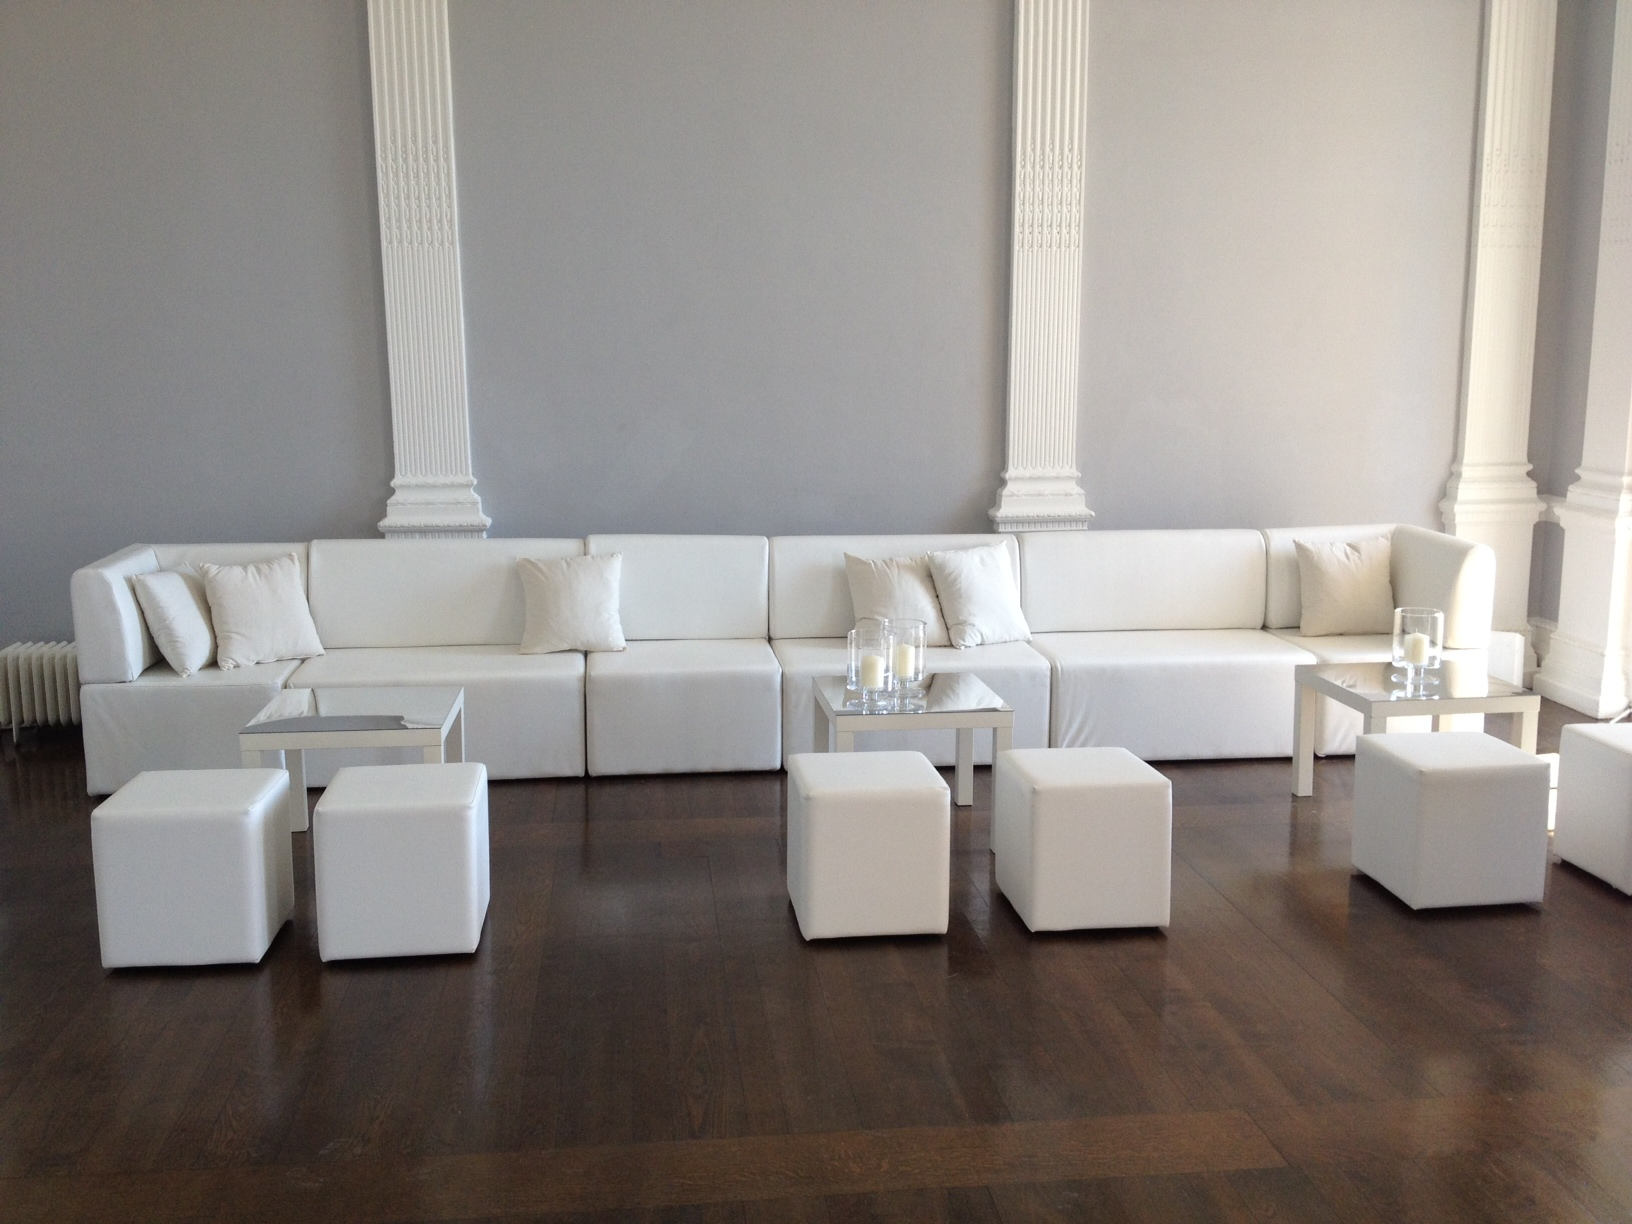 WHITE SOFA & POUFS